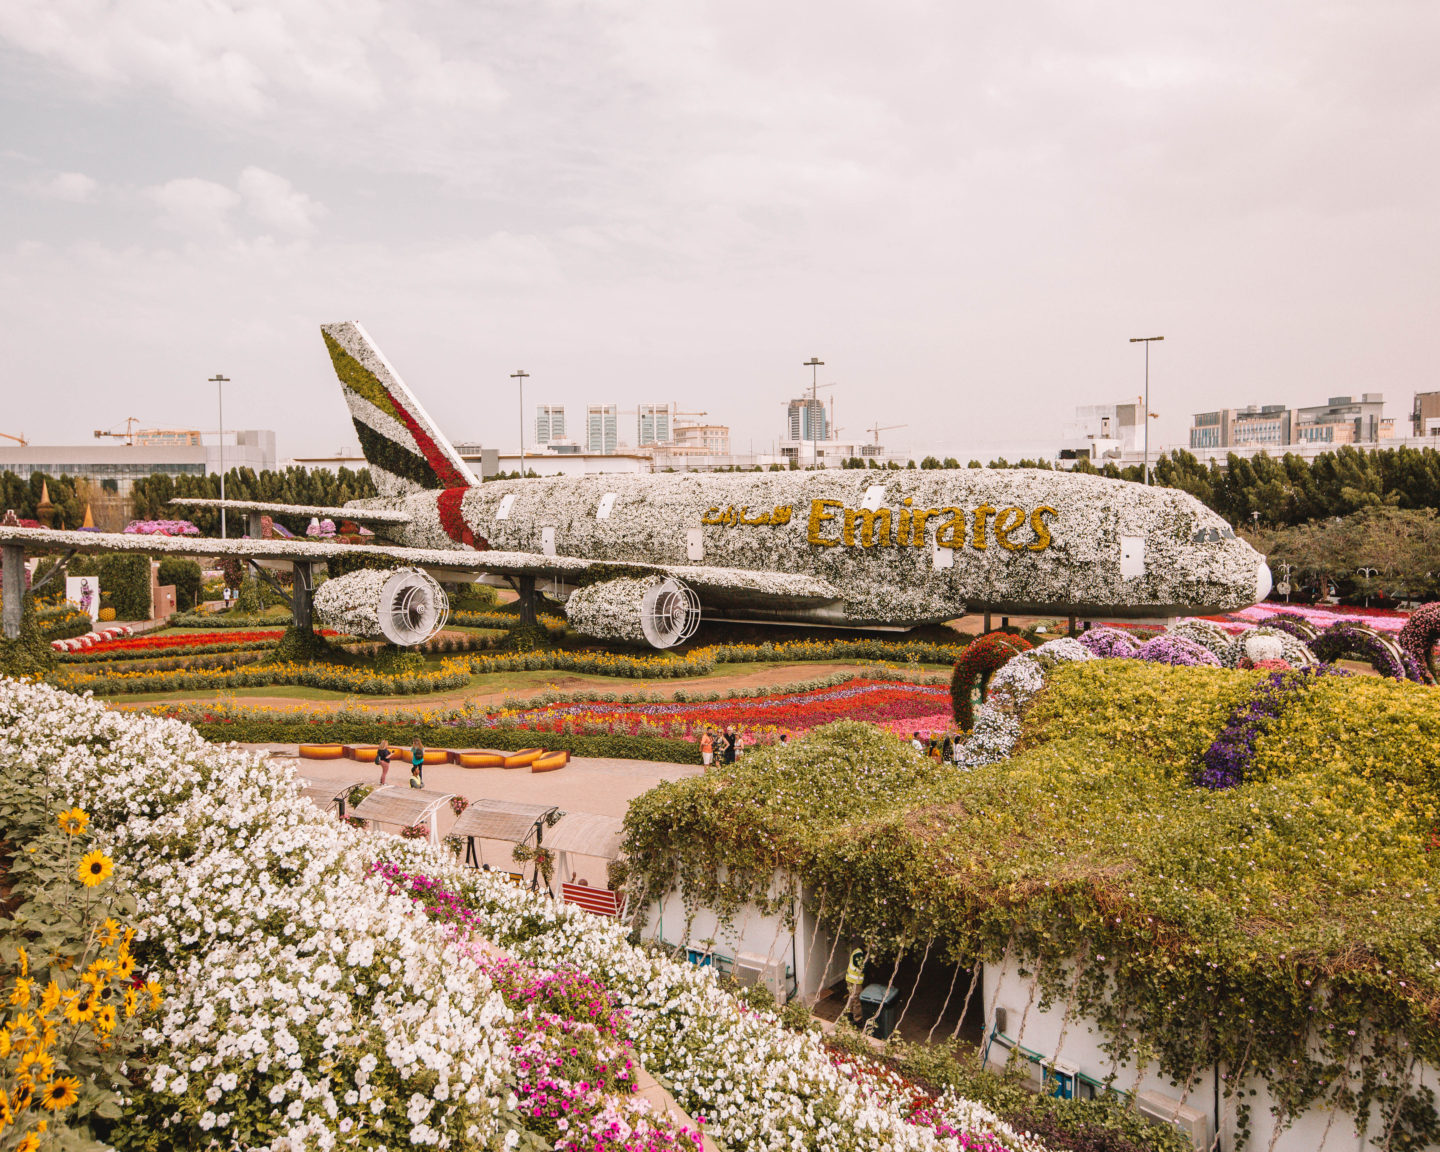 An Emirates plane covered in hundreds of thousands of flowers at the Miracle Garden in Dubai